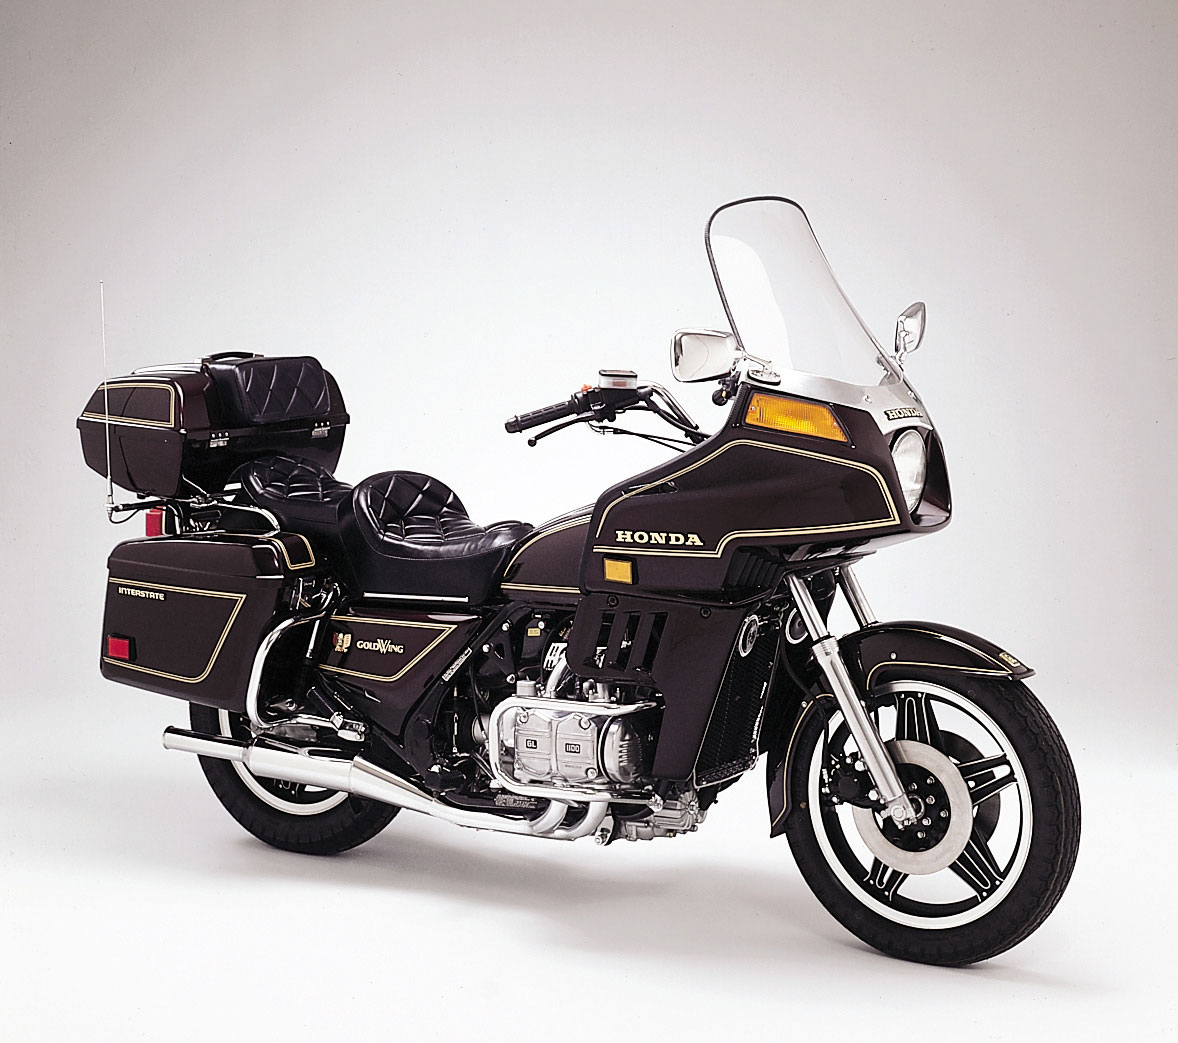 Honda GL 1100 Gold Wing 1982 images #81226